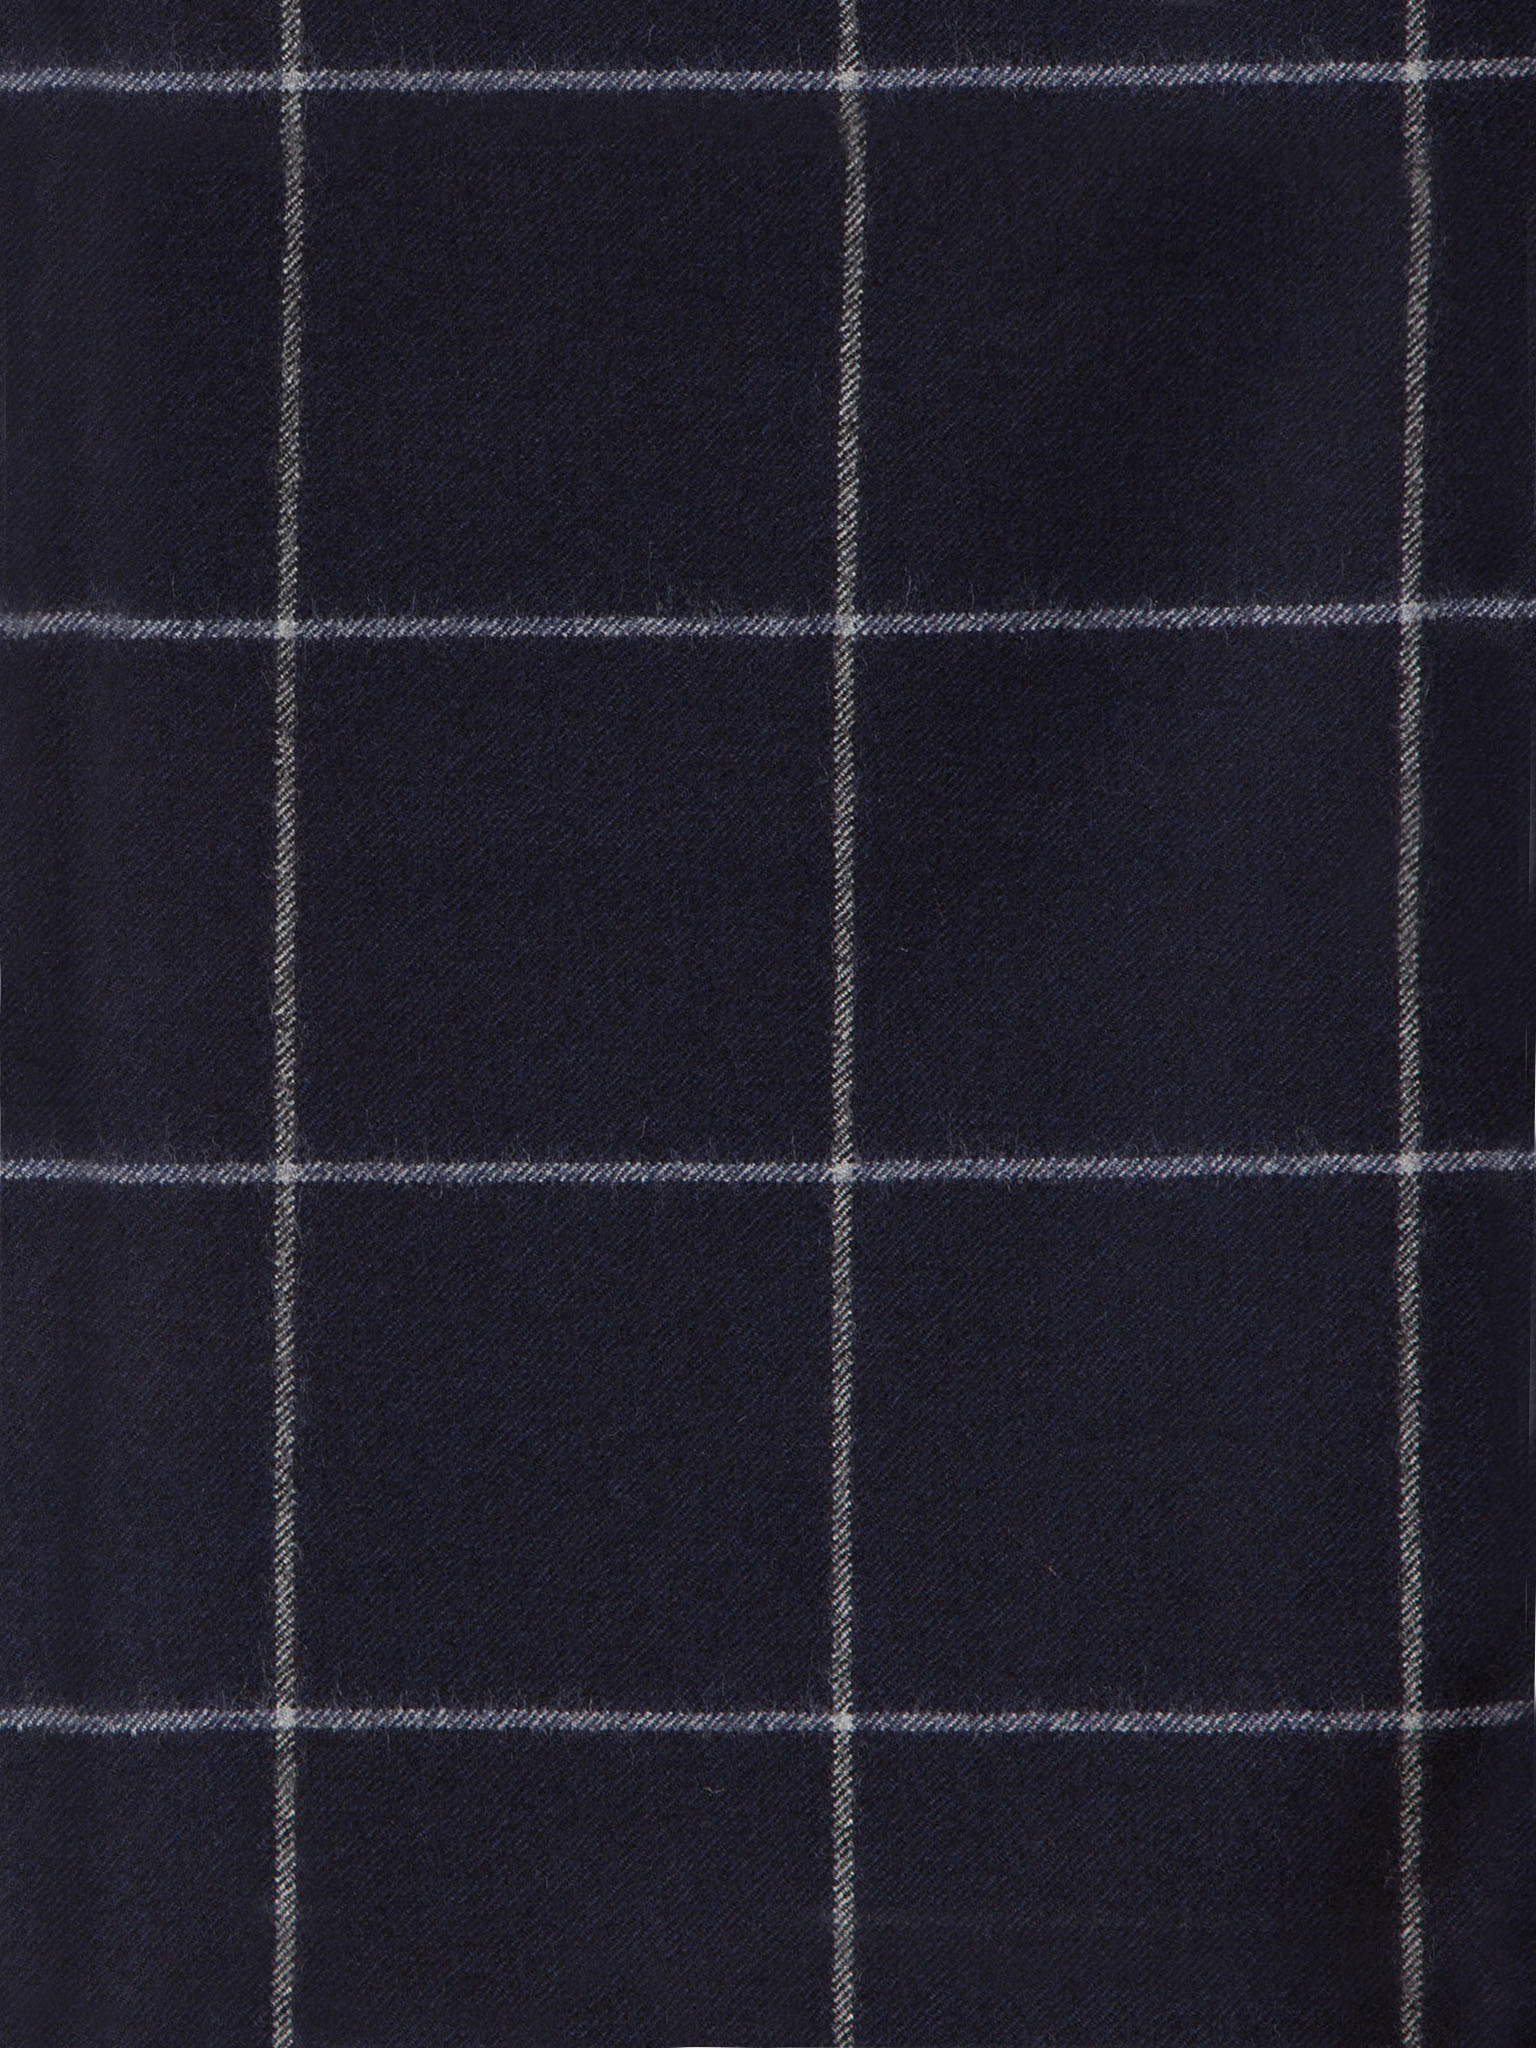 SAVILE ROW WINDOWPANE DE12081